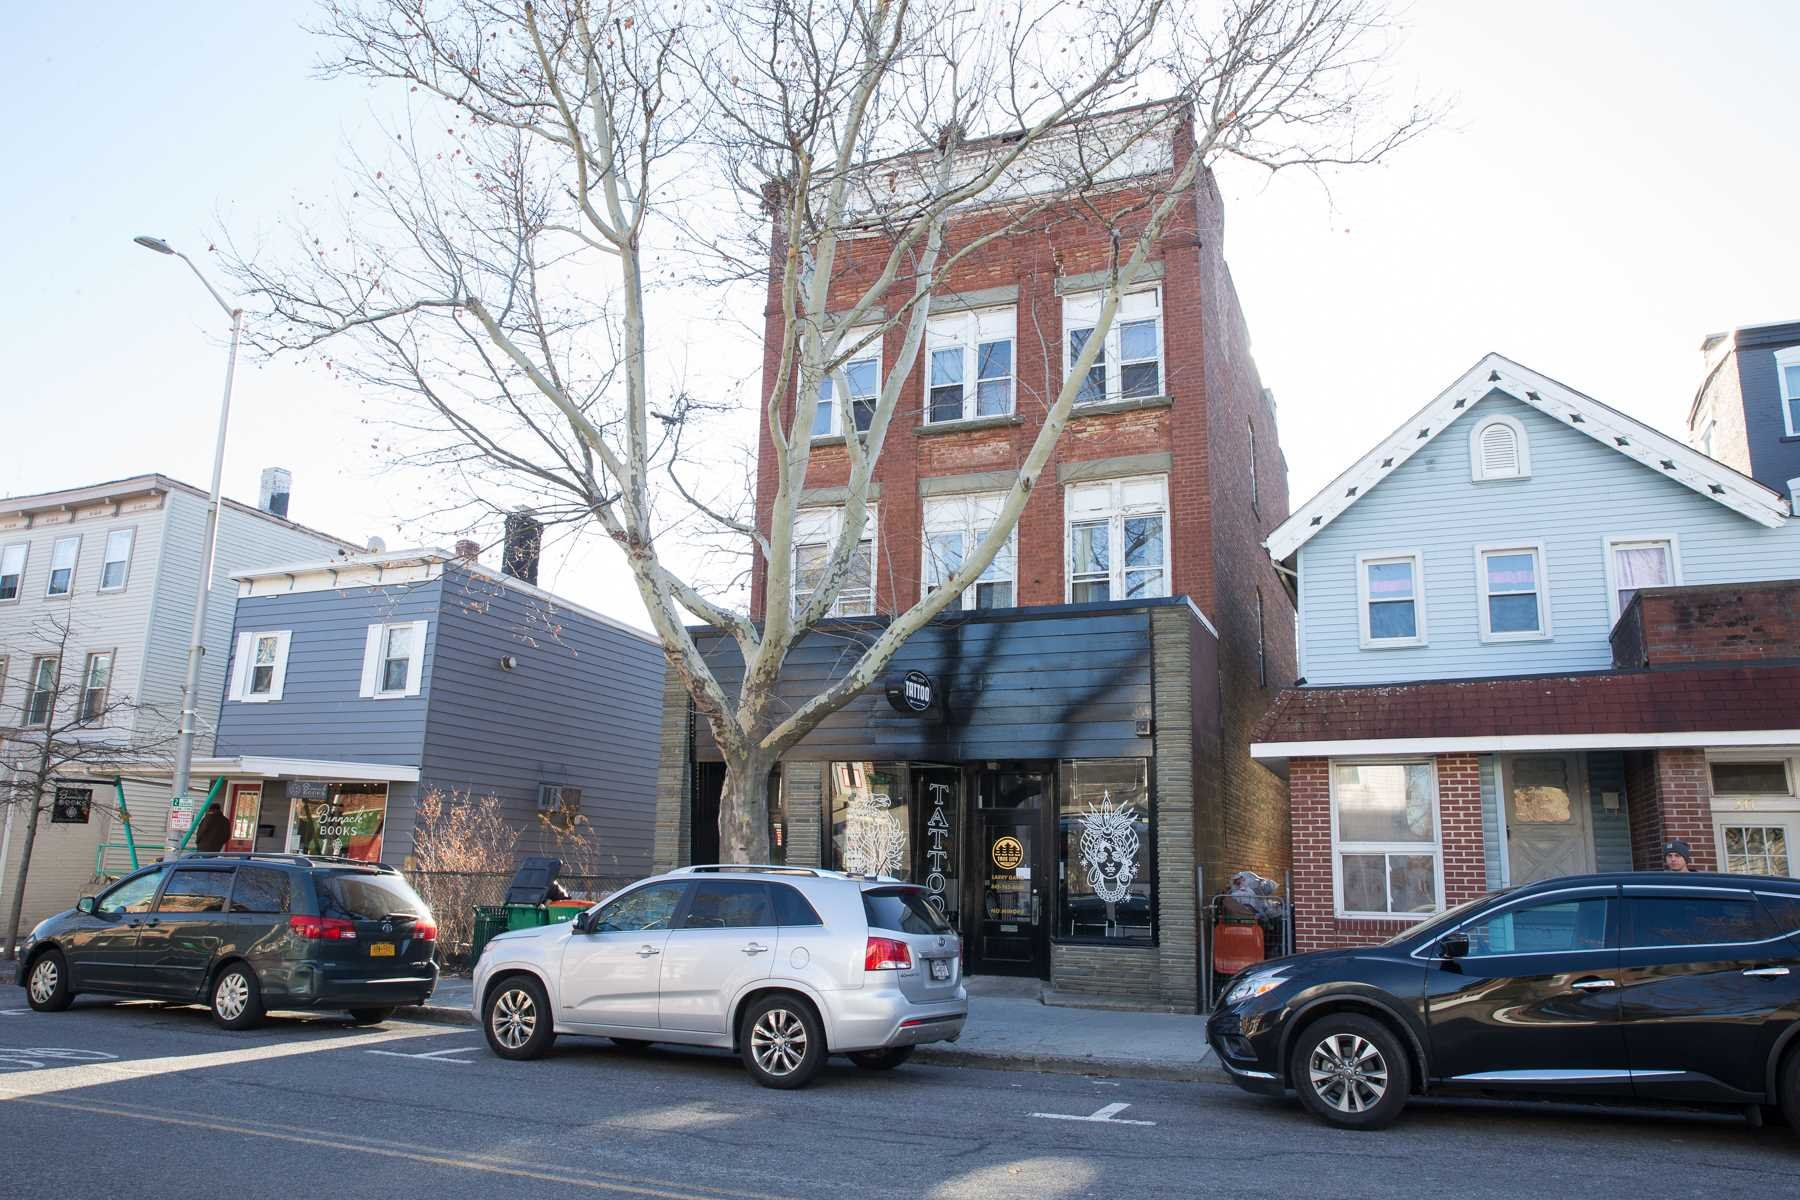 Additional photo for property listing at 319 MAIN Street 319 MAIN Street Beacon, New York 12508 United States